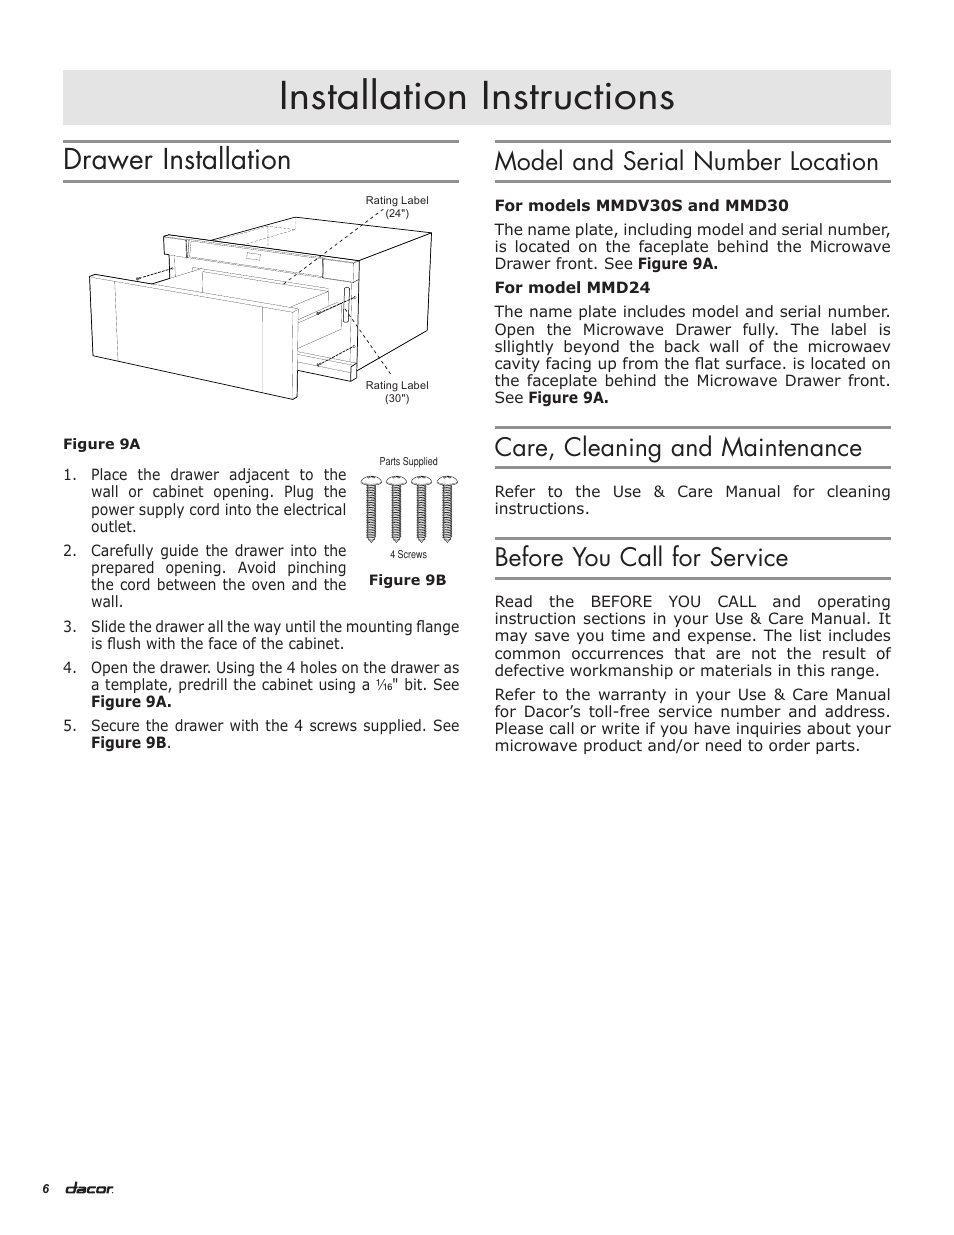 Installation Instructions Drawer Model And Serial Dacor Wall Oven Wiring Diagram Number Location Mmdv30s Manuel Dutilisation Page 8 16